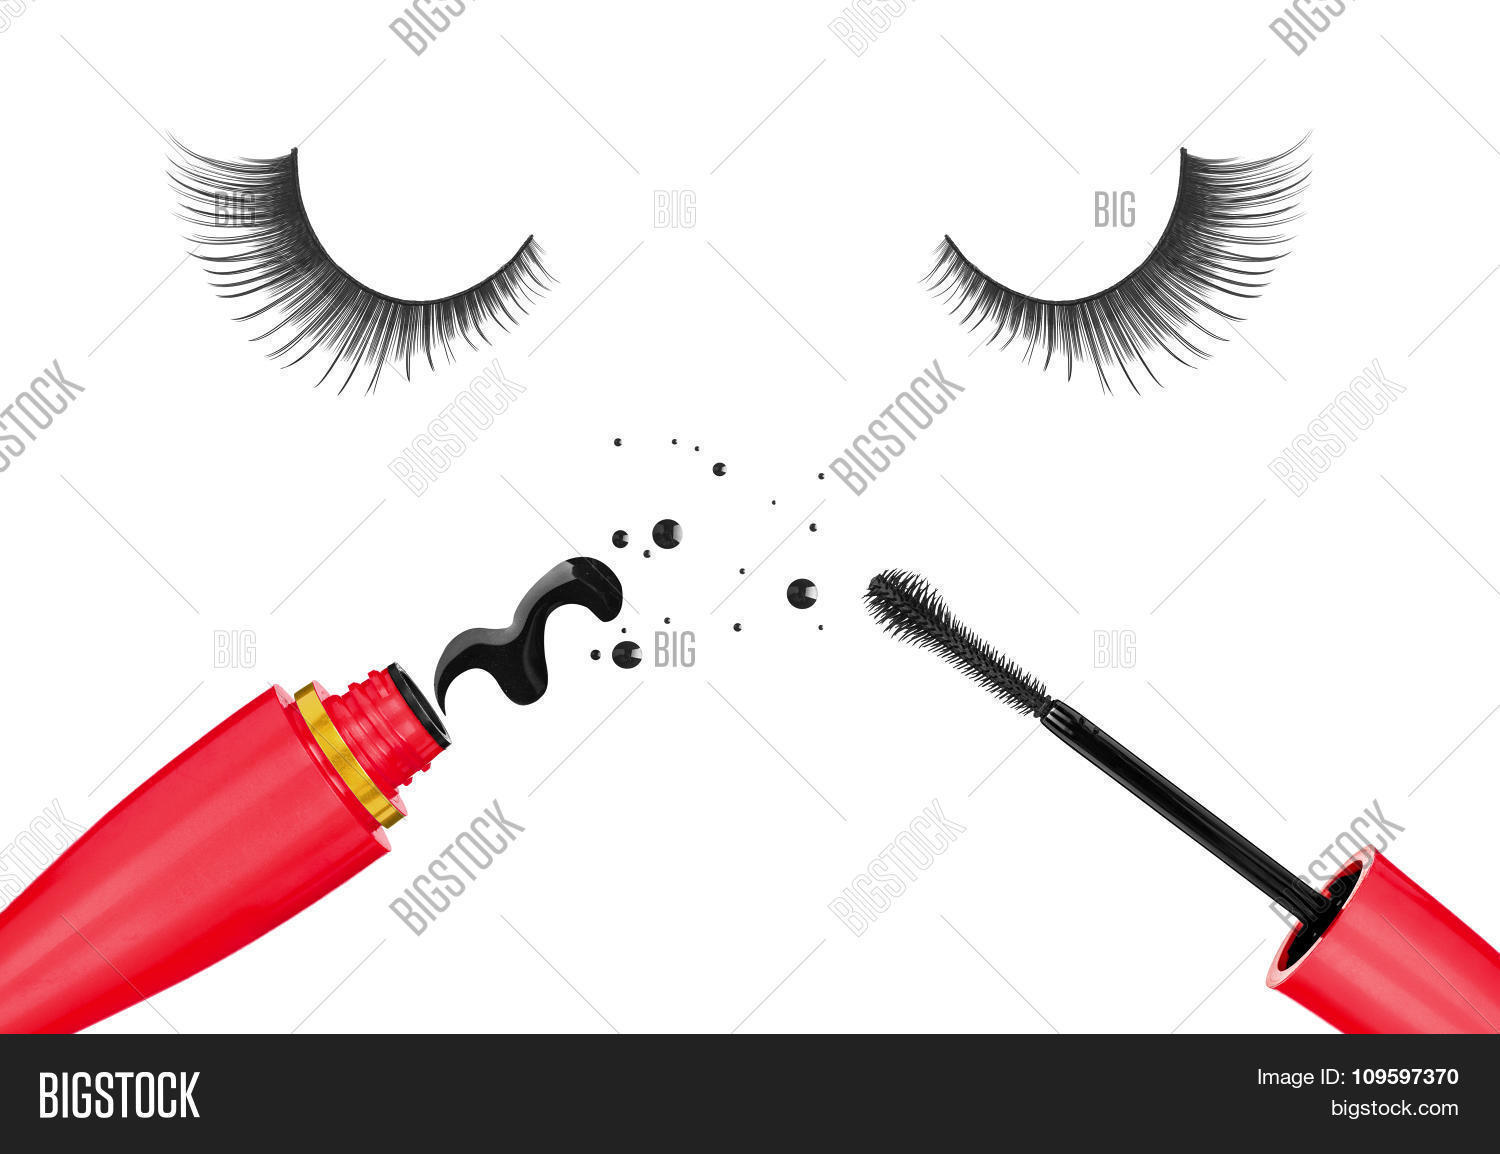 f88e478676c False Eyelashes And Mascara In The Red Tube Isolated On White Background